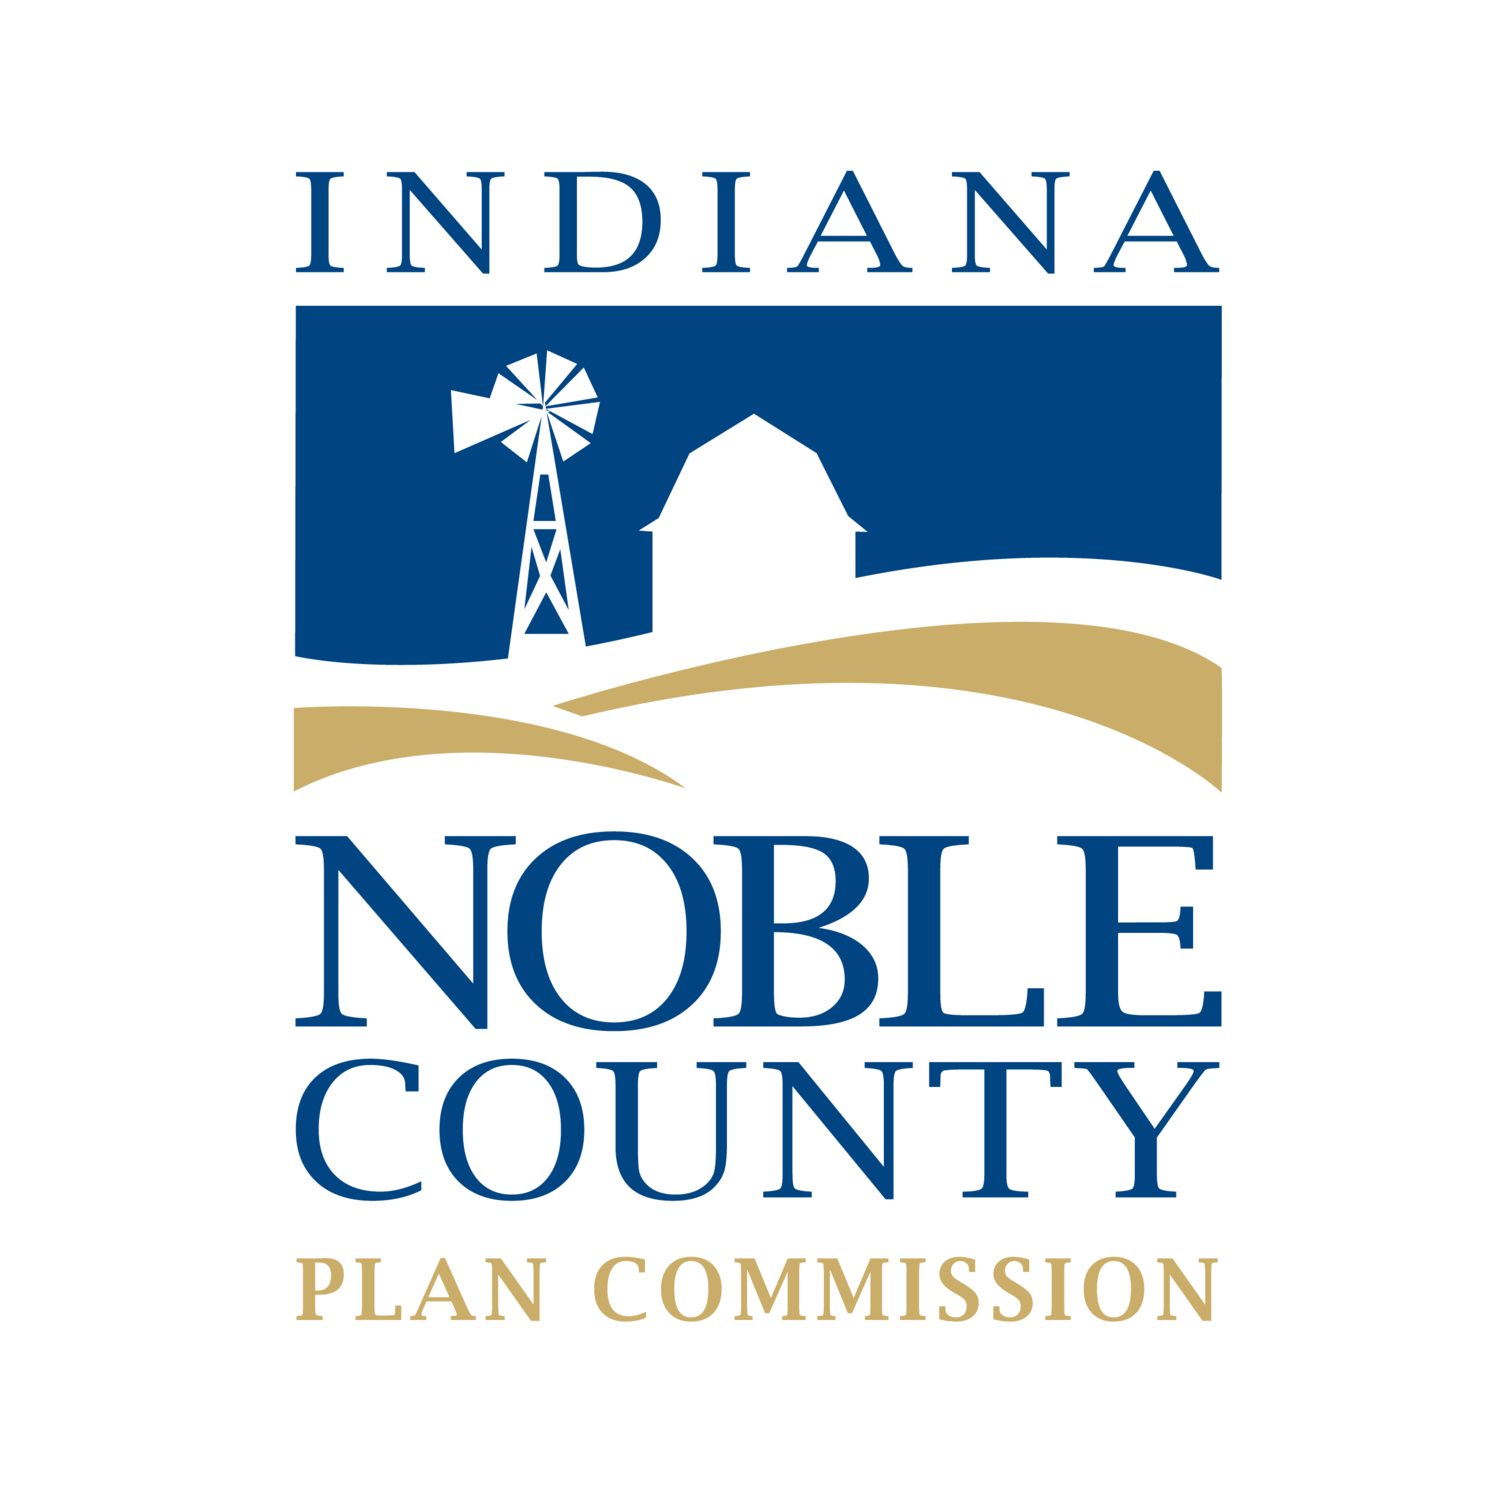 Indiana noble county laotto - Plan Commission Of Noble County